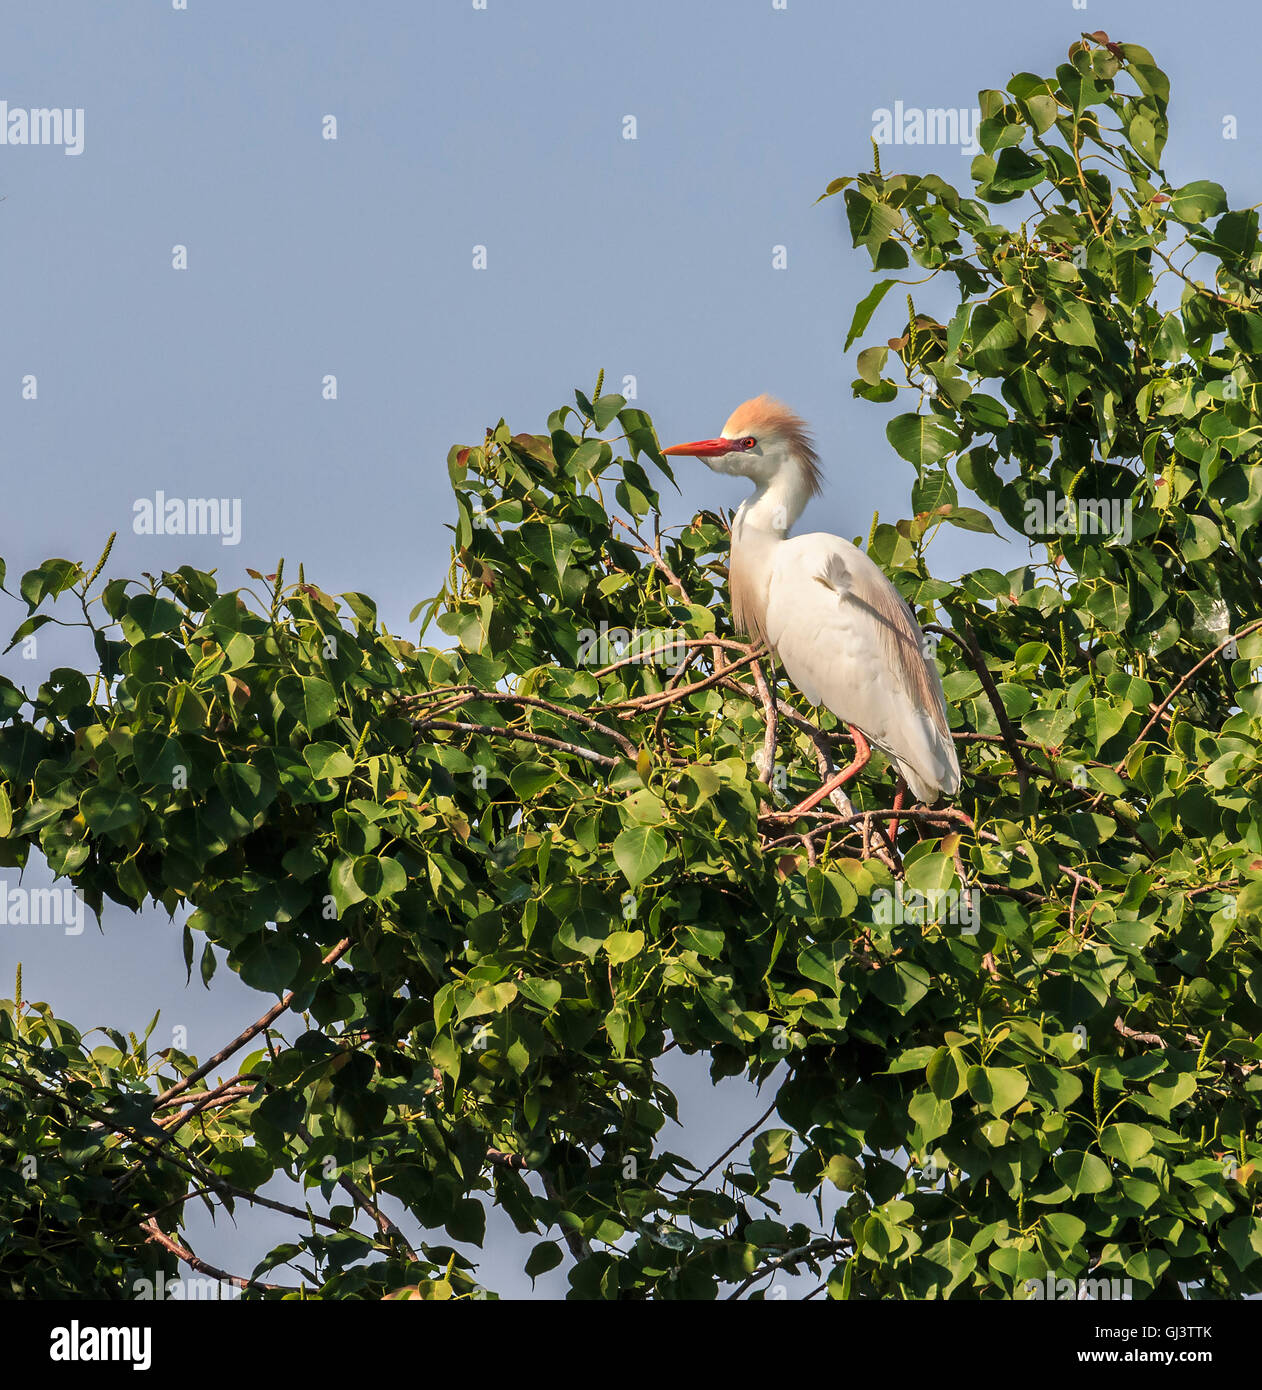 The cattle egret during breeding season with orange plumage visible on the head. - Stock Image